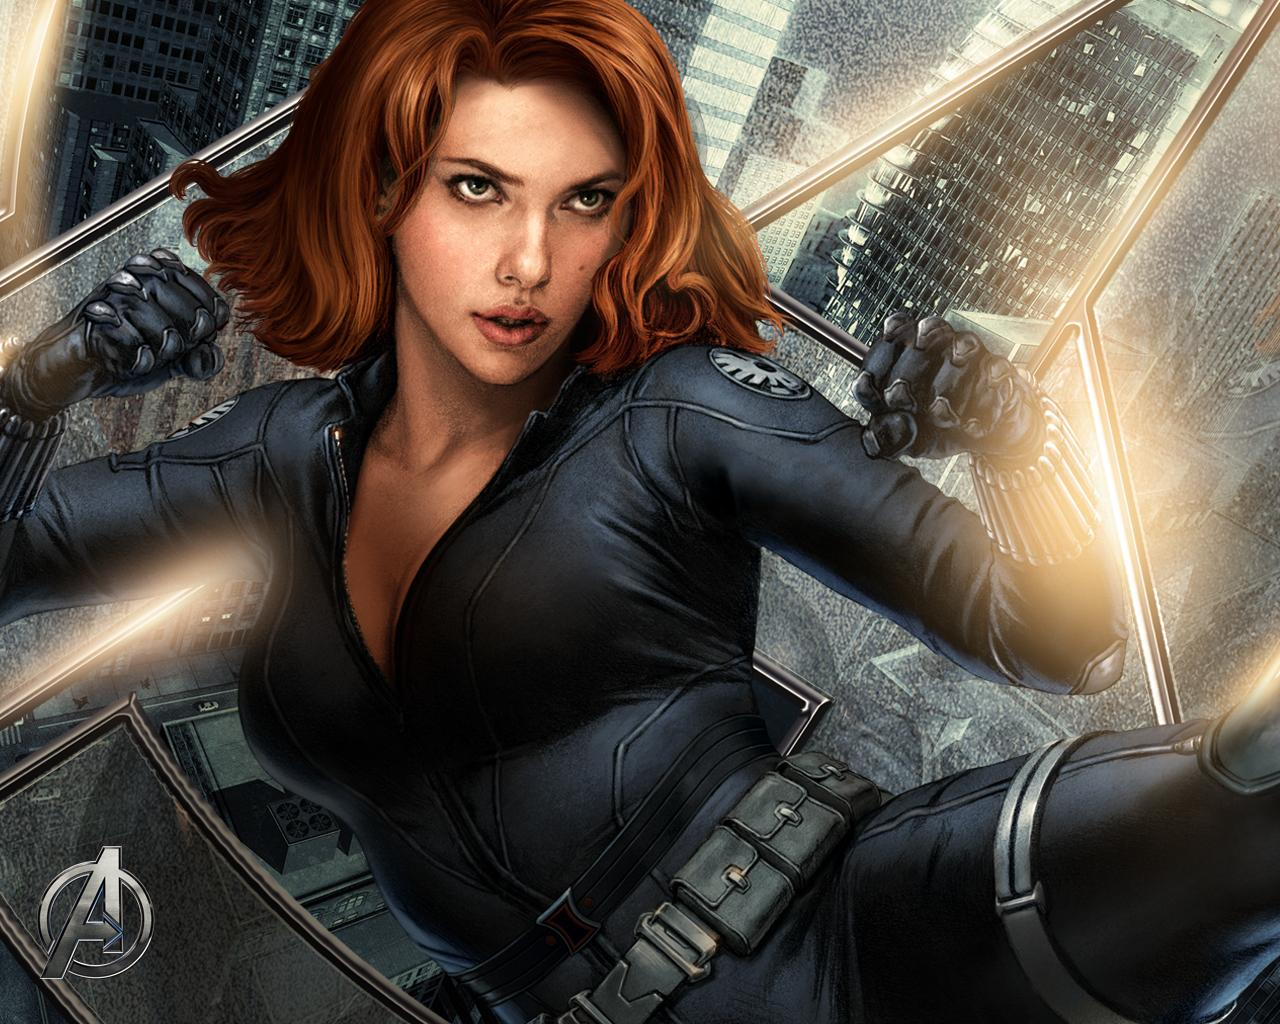 Black Widow via Flickr